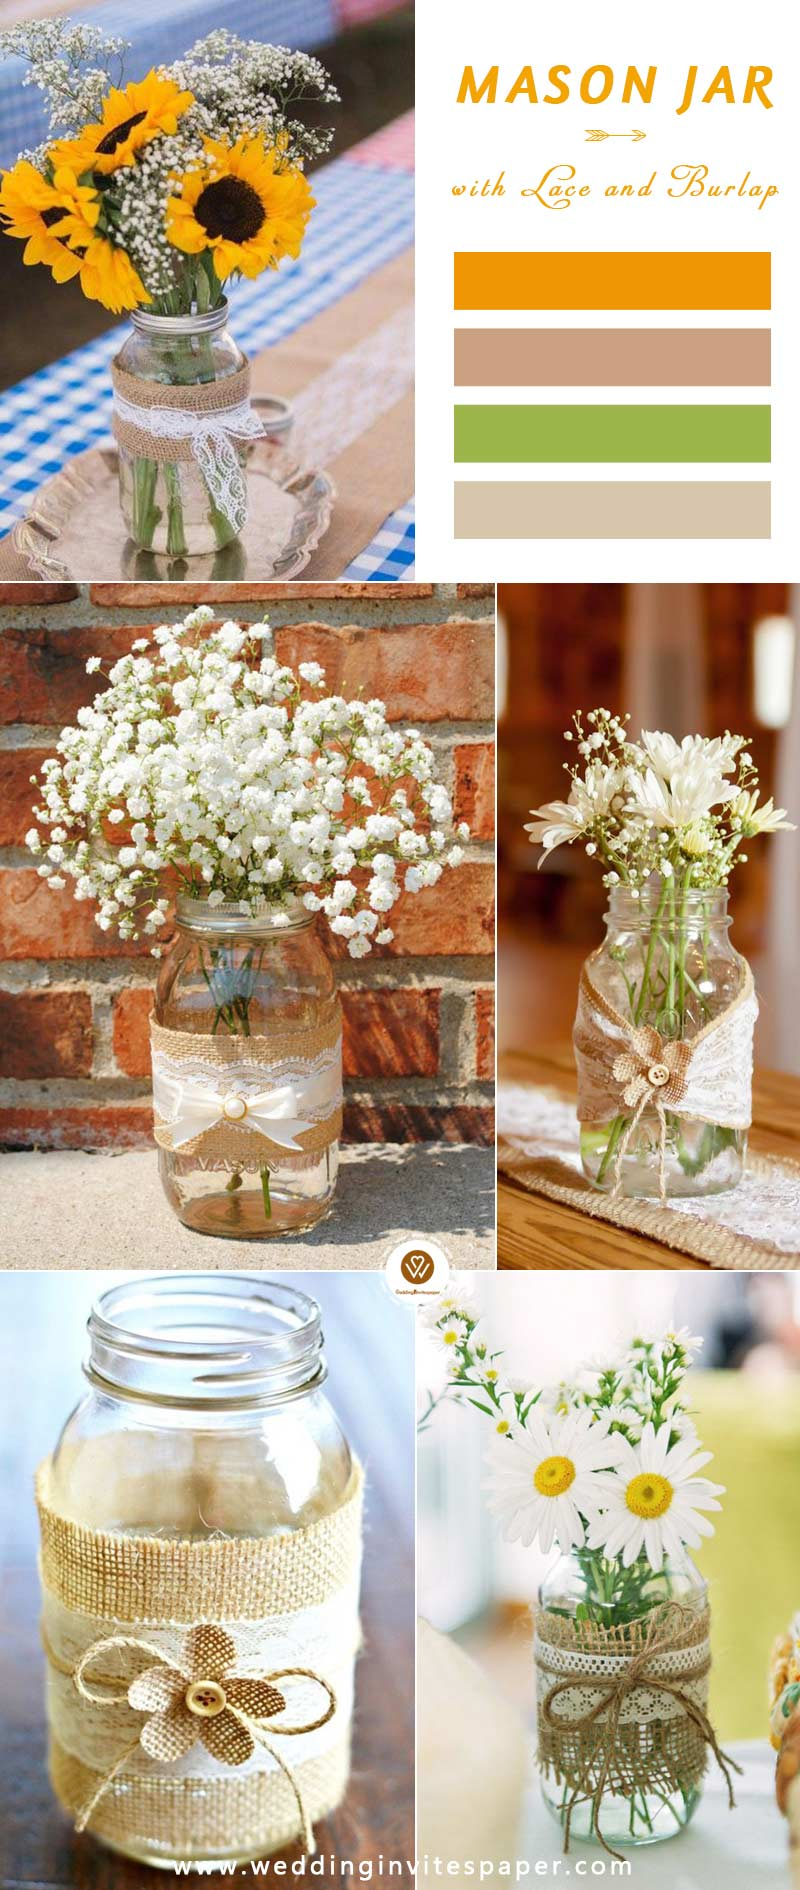 MASON-JAR-with-Lace-and-Burlap.jpg